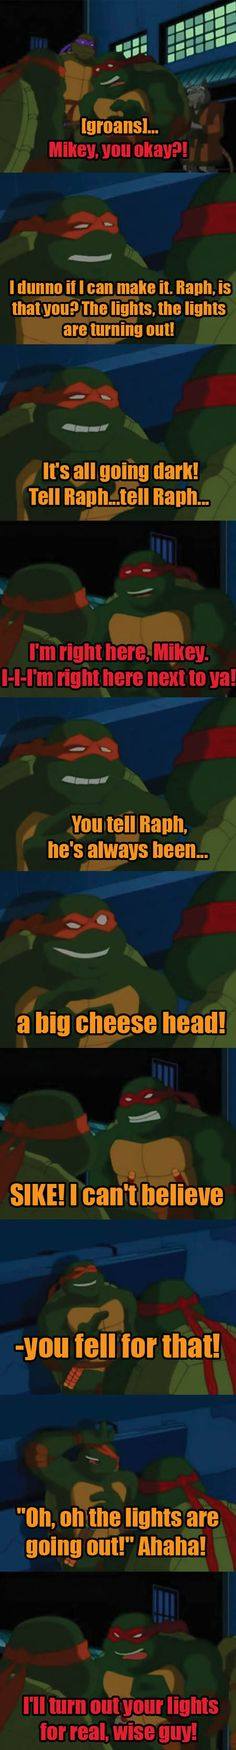 Mikey and Raph, awww! he loves him........oh.......then hates him, typical.